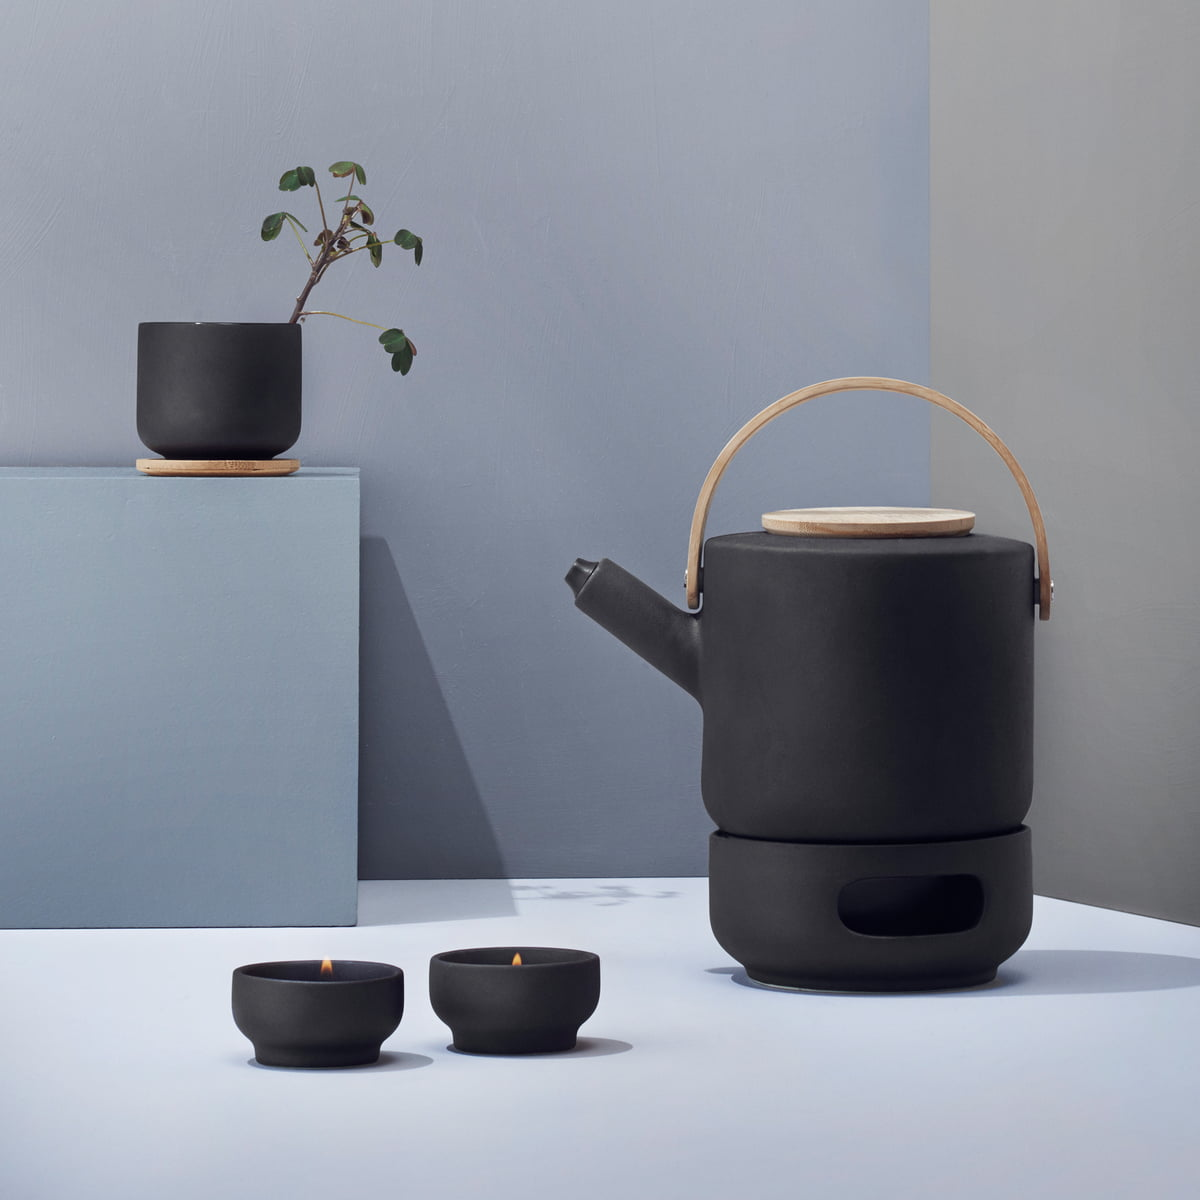 theo teekanne von stelton im wohndesign shop. Black Bedroom Furniture Sets. Home Design Ideas